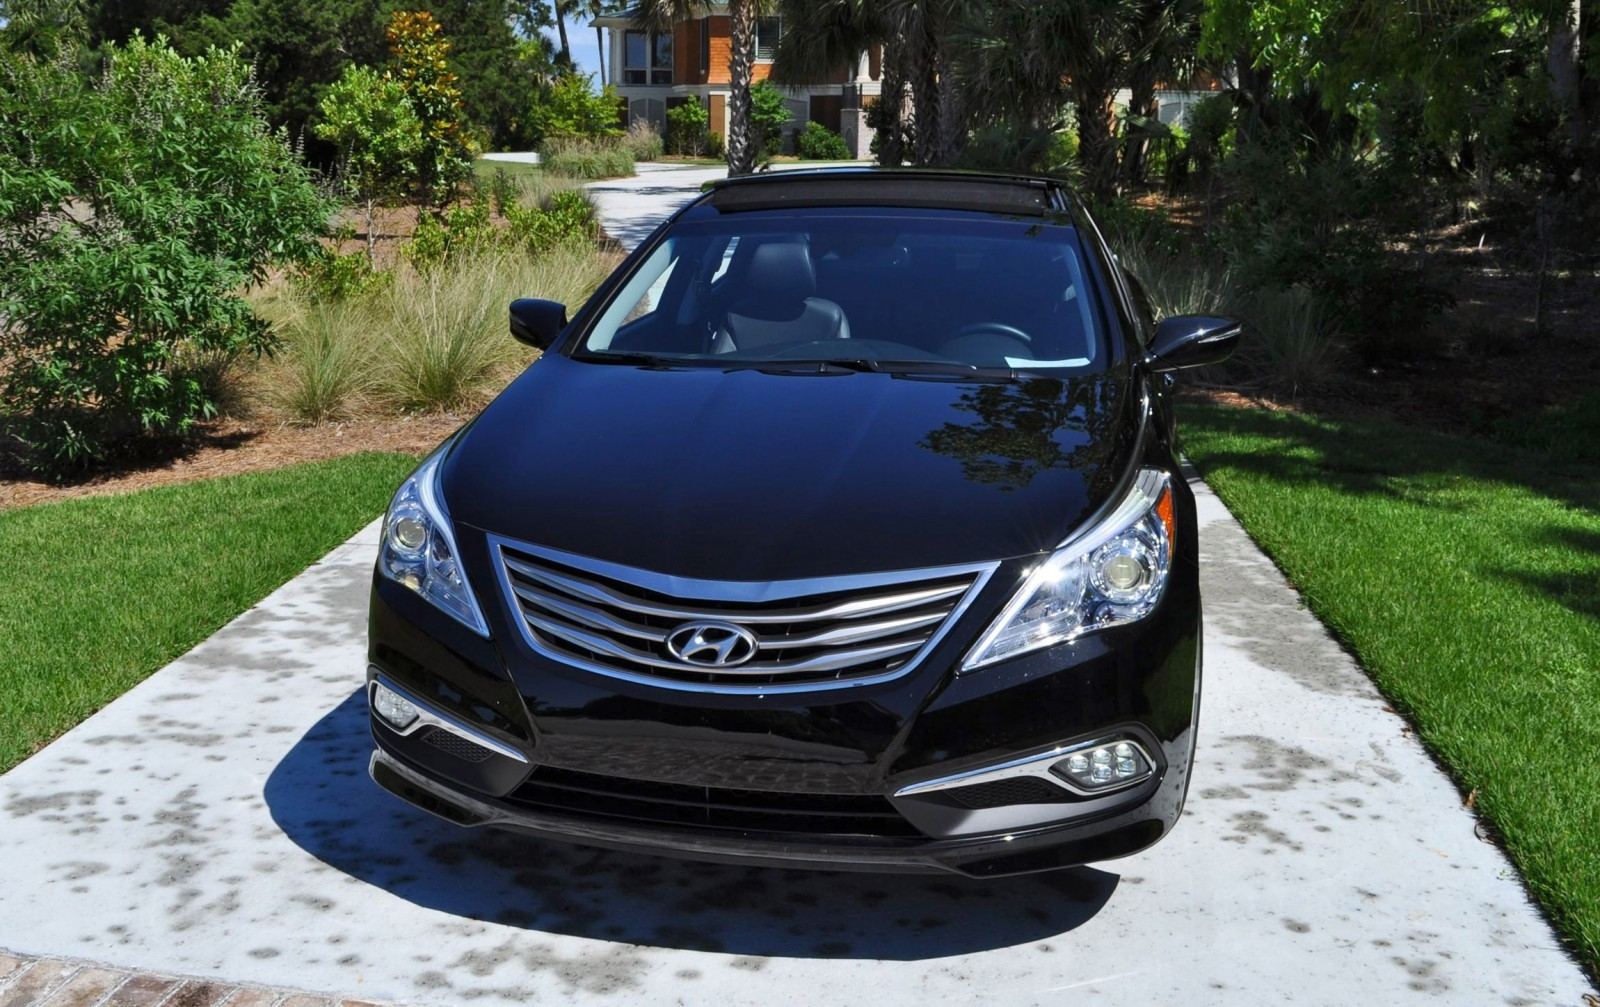 Road Test Review - 2015 Hyundai AZERA Limited 95